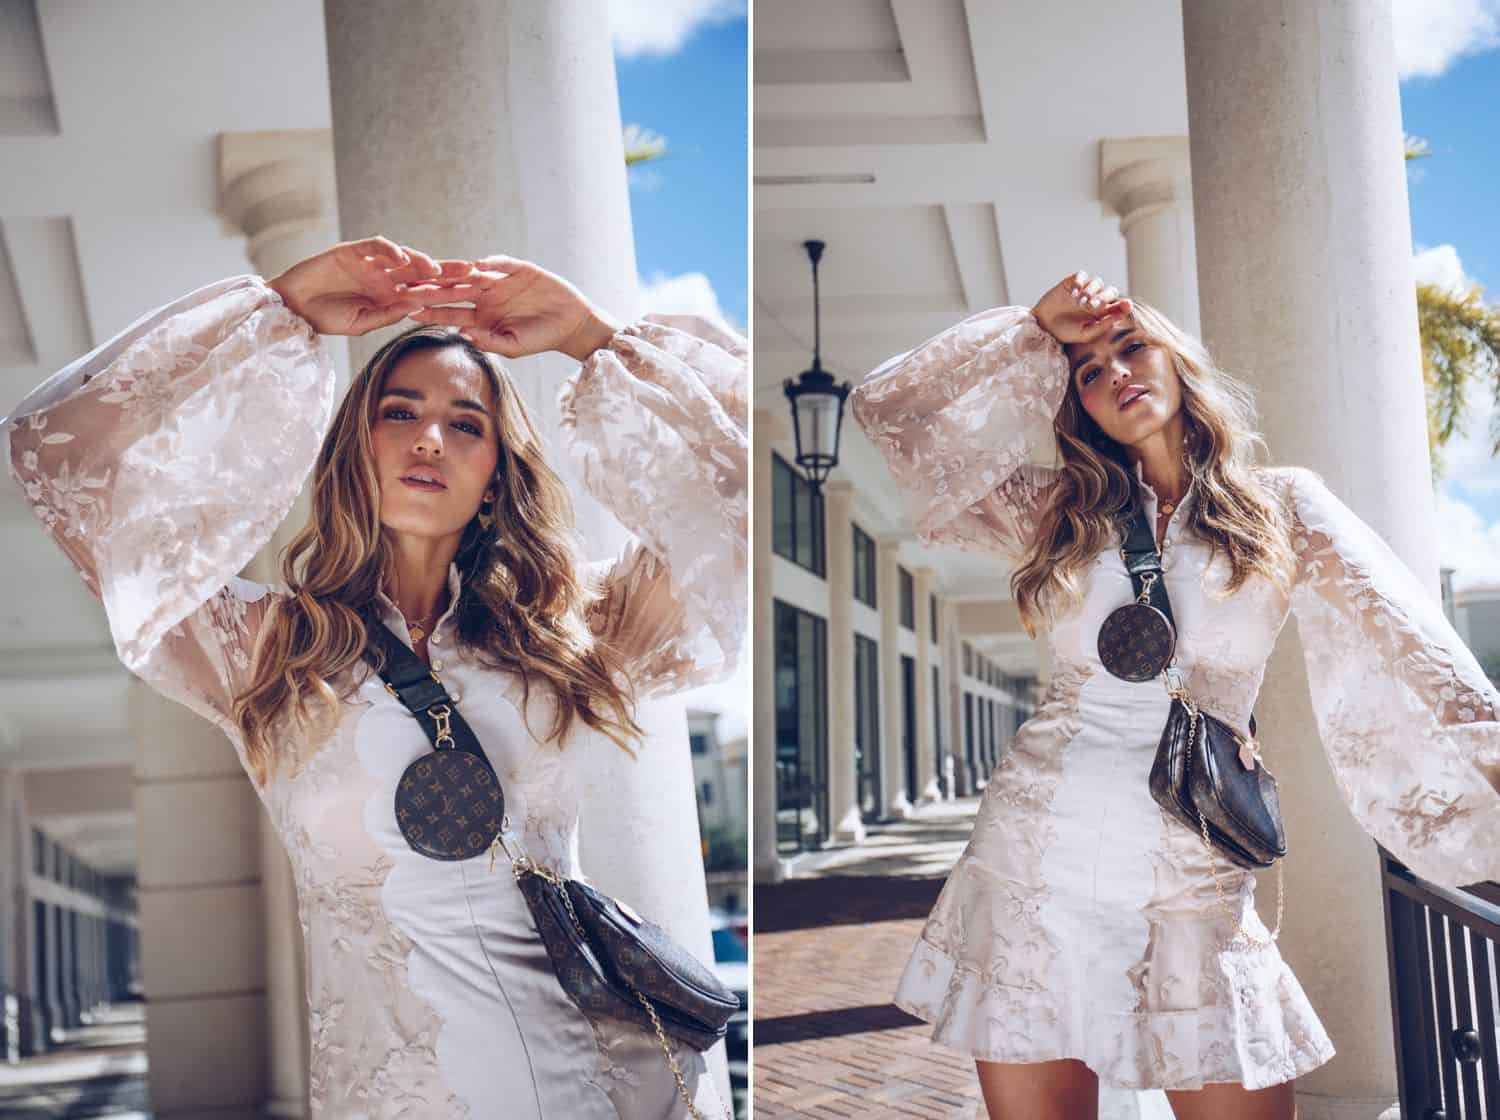 A model with long wavy hair and Louis Vuitton accessories poses outside against a towering white column